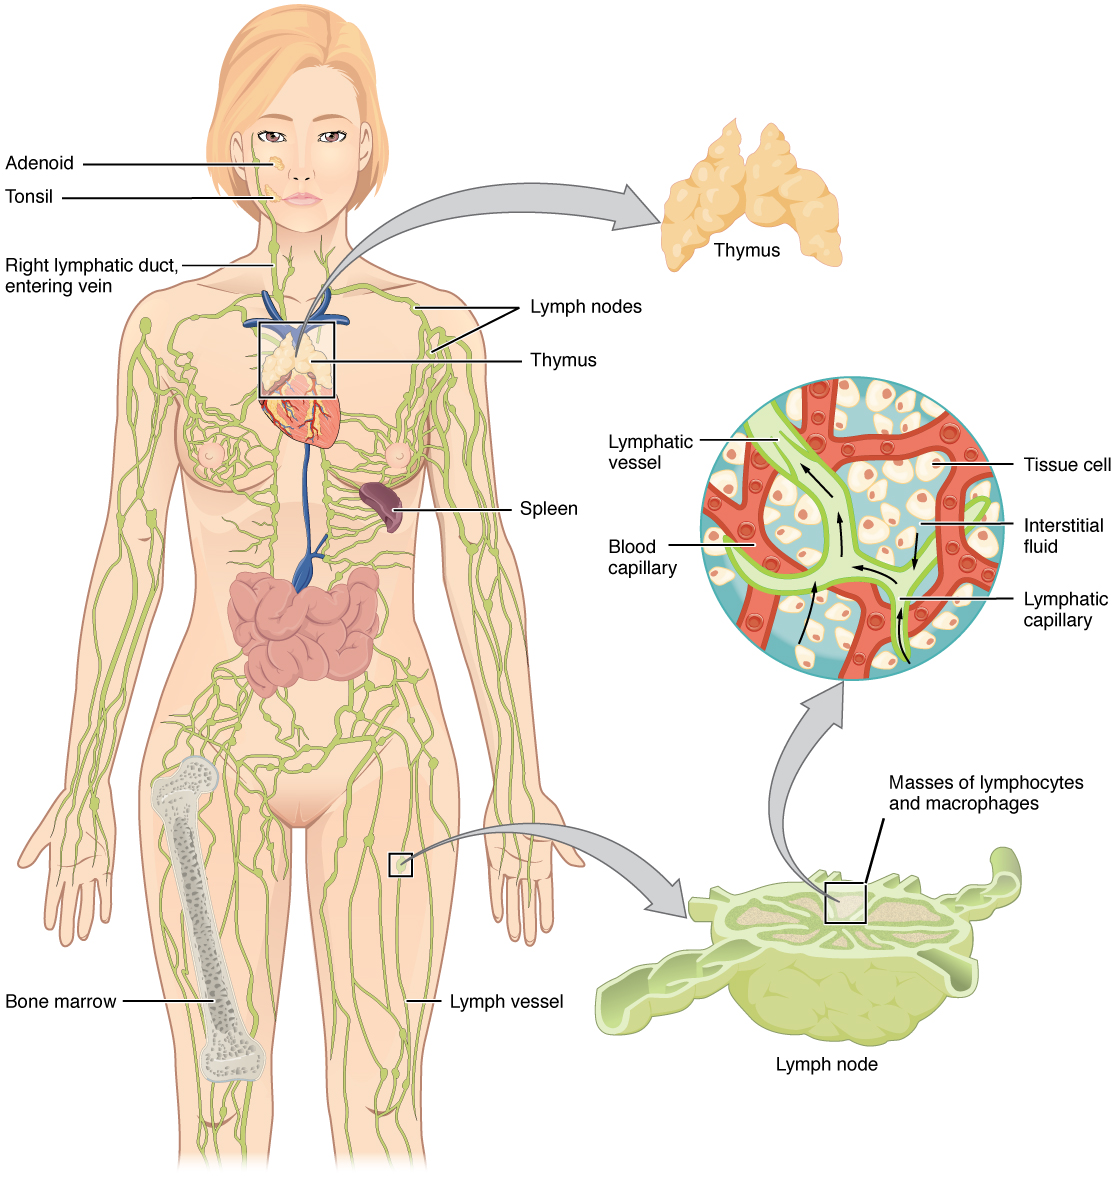 The left panel shows a female human body, and the entire lymphatic system is shown. The right panel shows magnified images of the thymus and the lymph node. All the major parts in the lymphatic system are labeled.